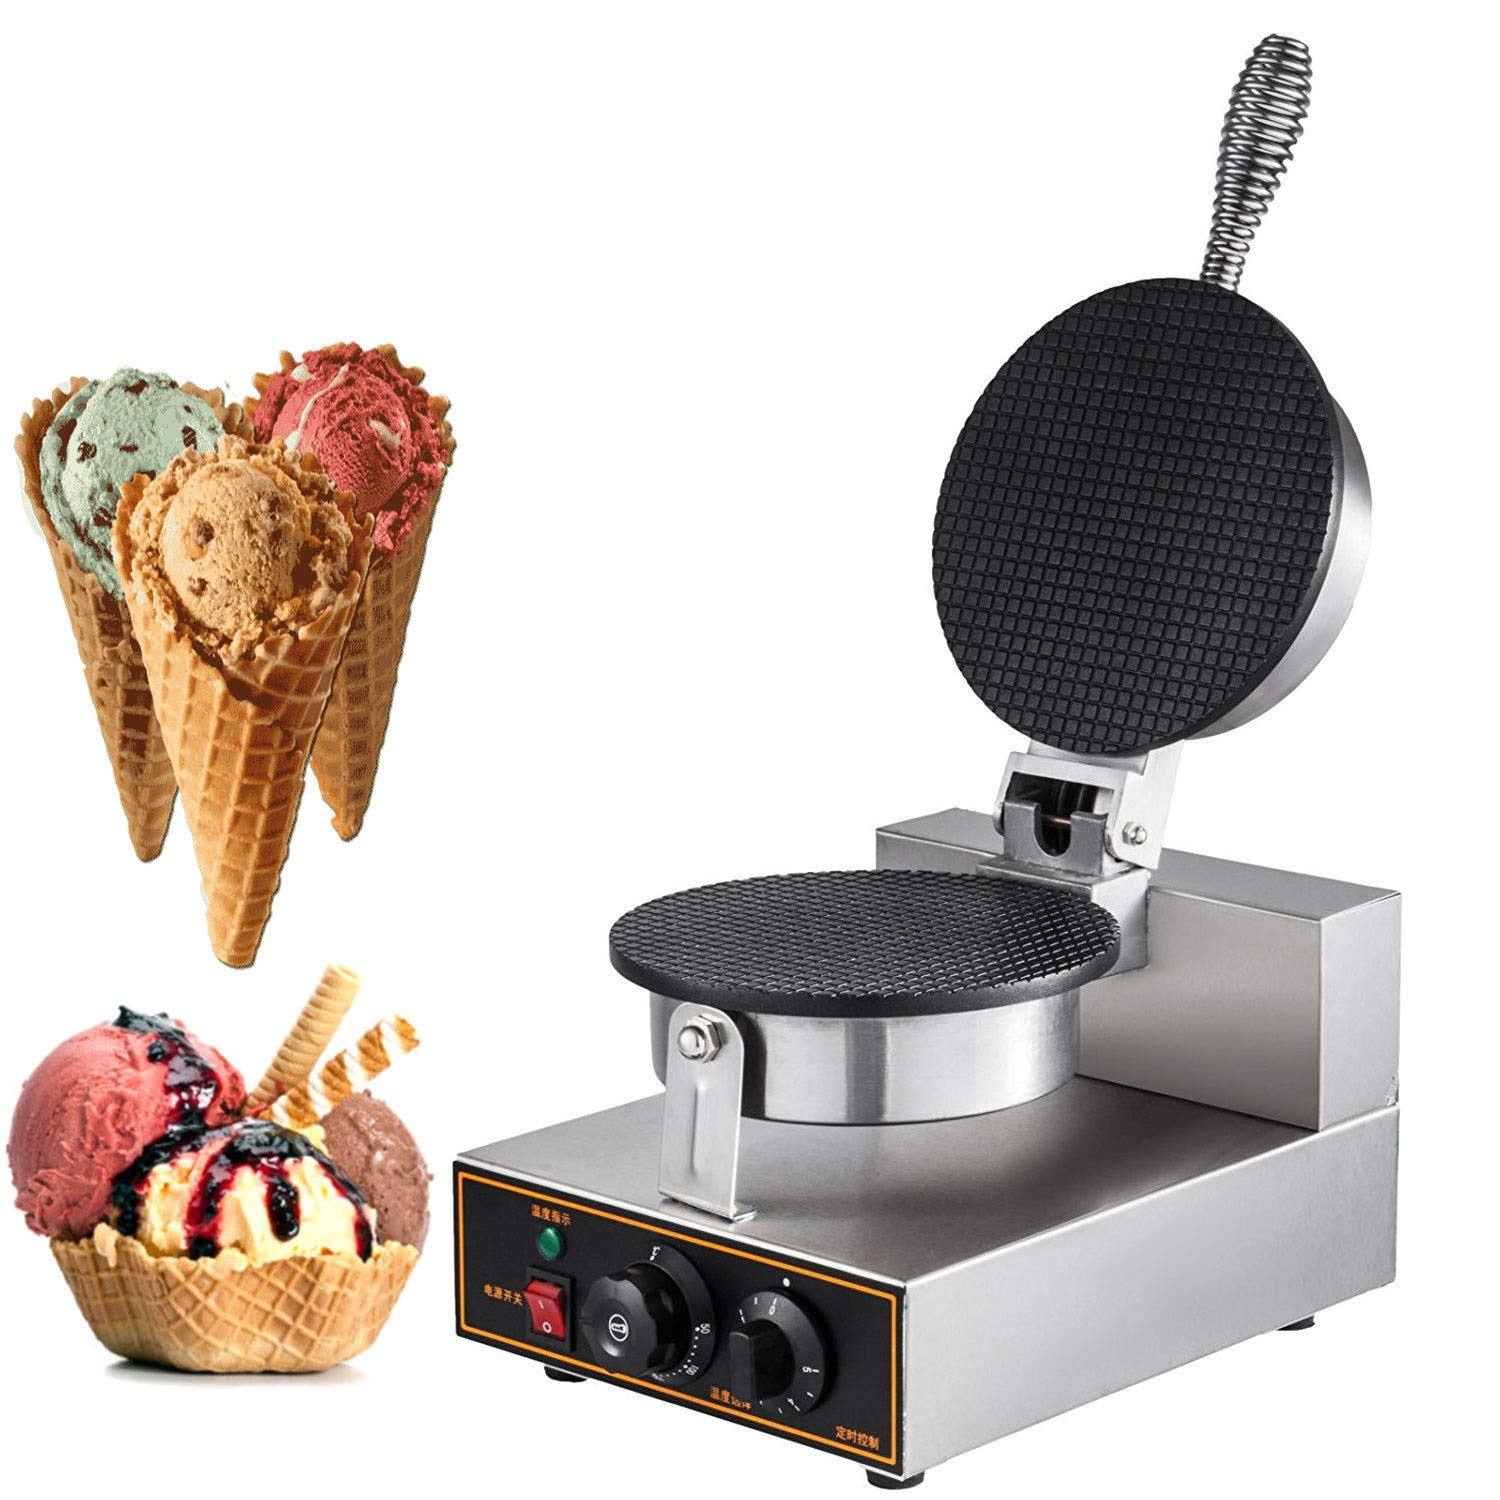 Happybuy Waffle Maker Machine Stainless Steel Nonstick Surface for Commercial Home use (Egg Roll Waffle Maker)